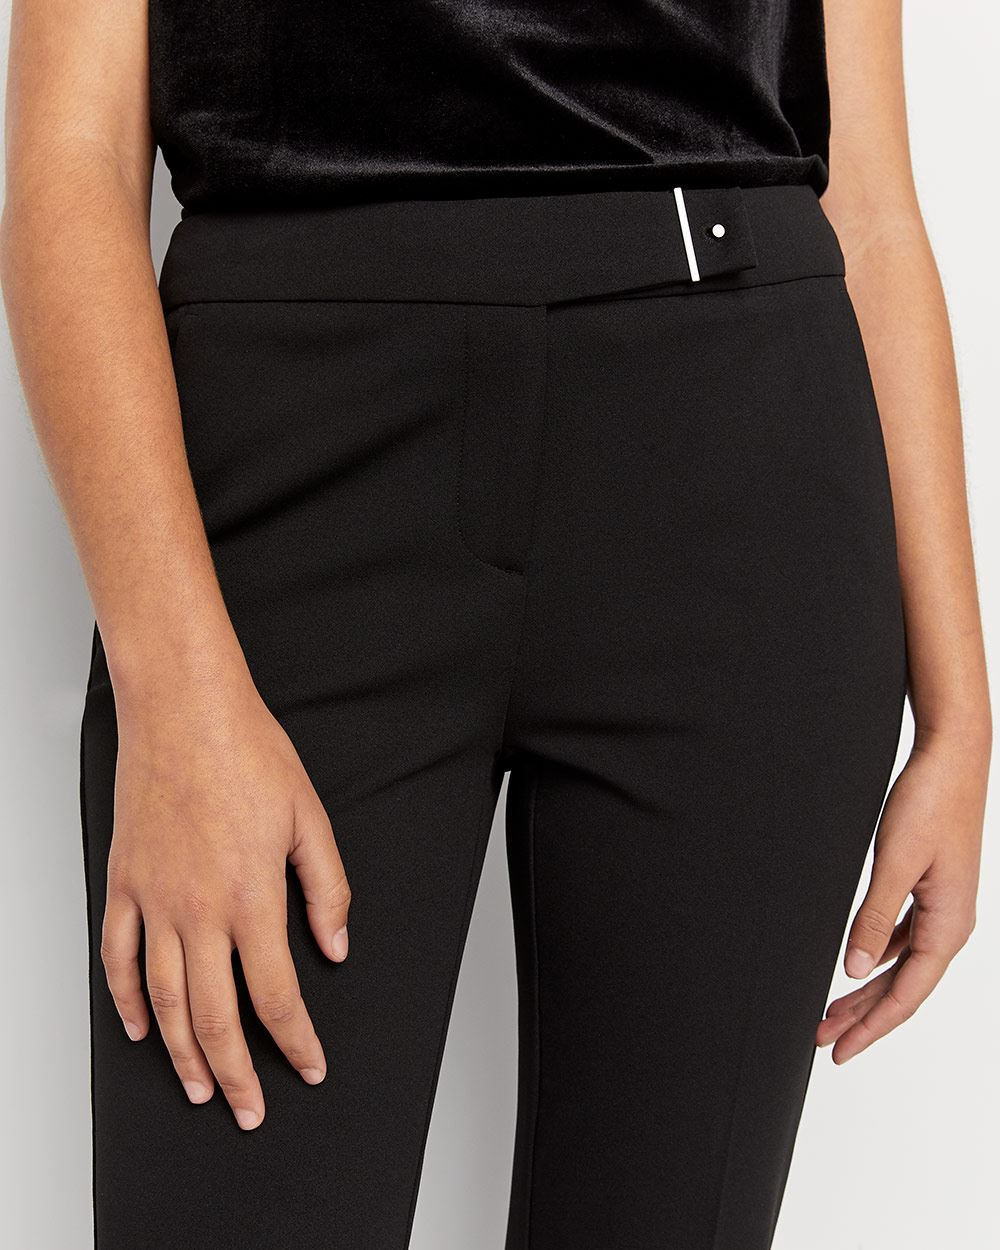 Black Straight Leg Pants with Metal Detail - Tall